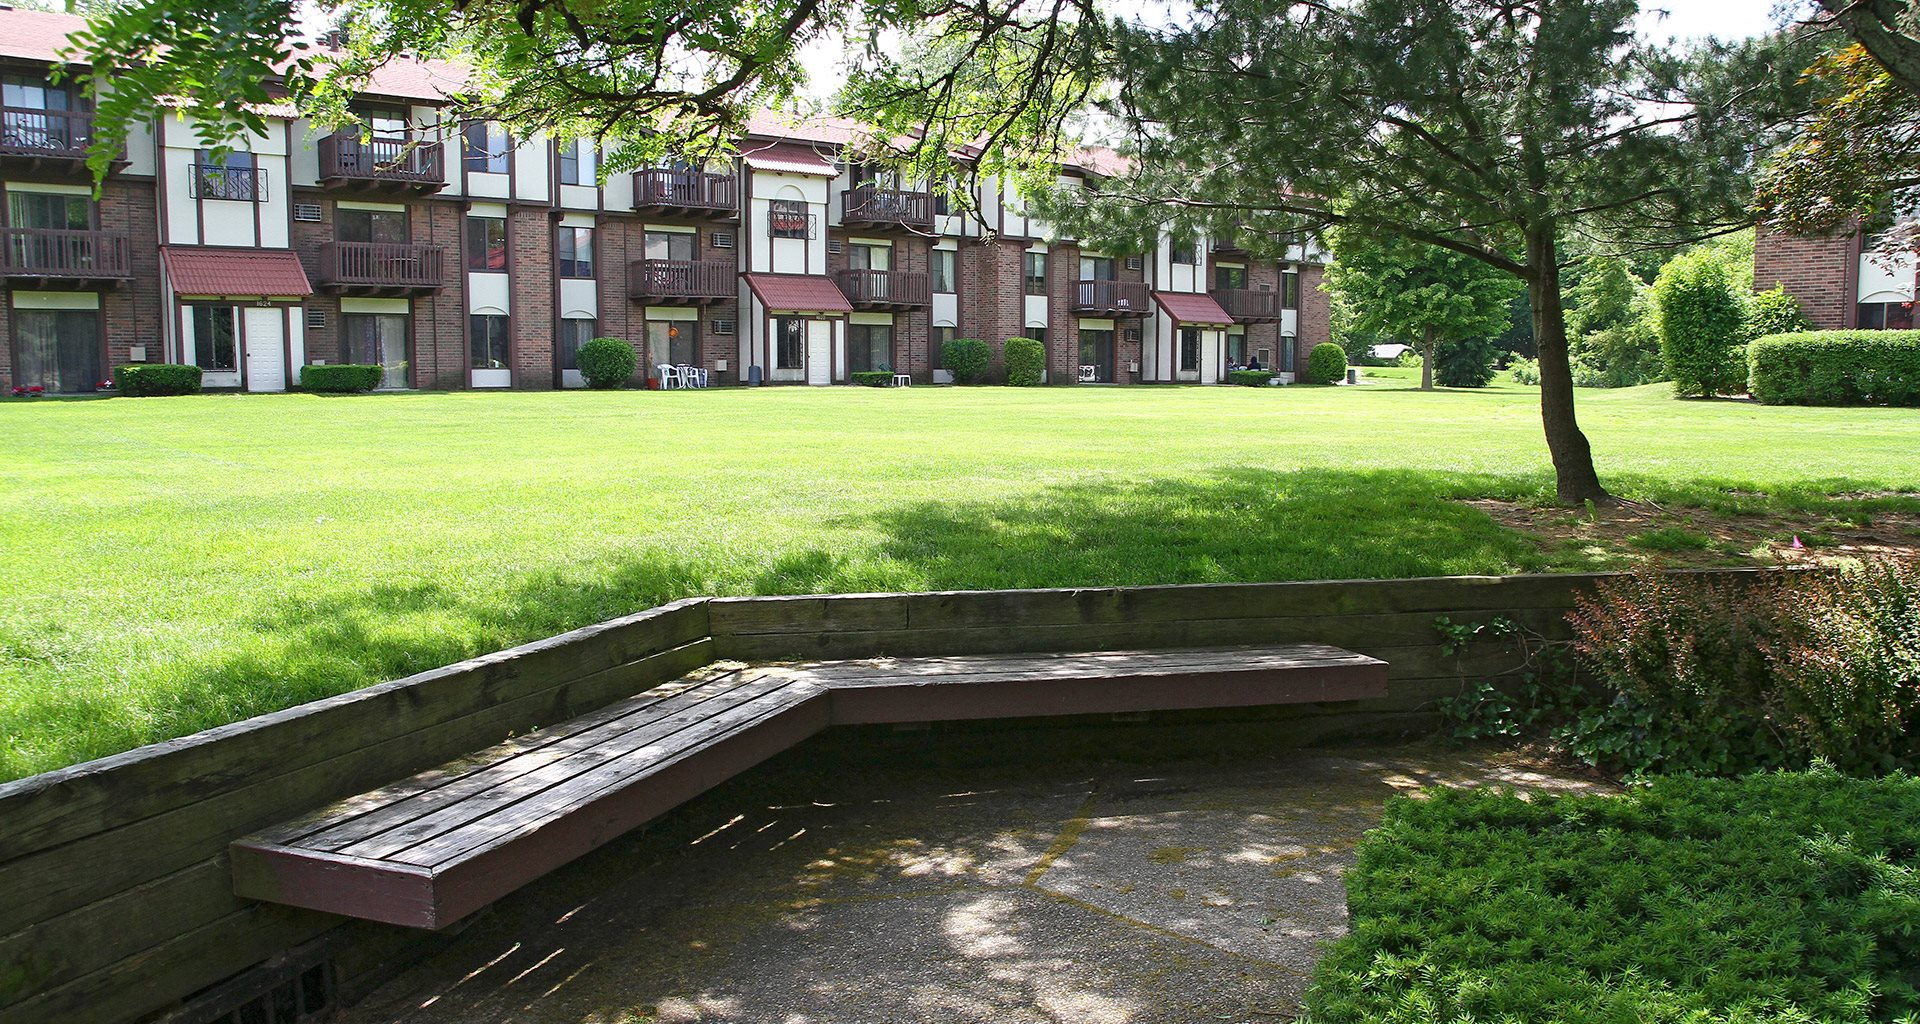 Manicured Lawns with Shade Trees at Madeira Apartments, Kalamazoo, 49001